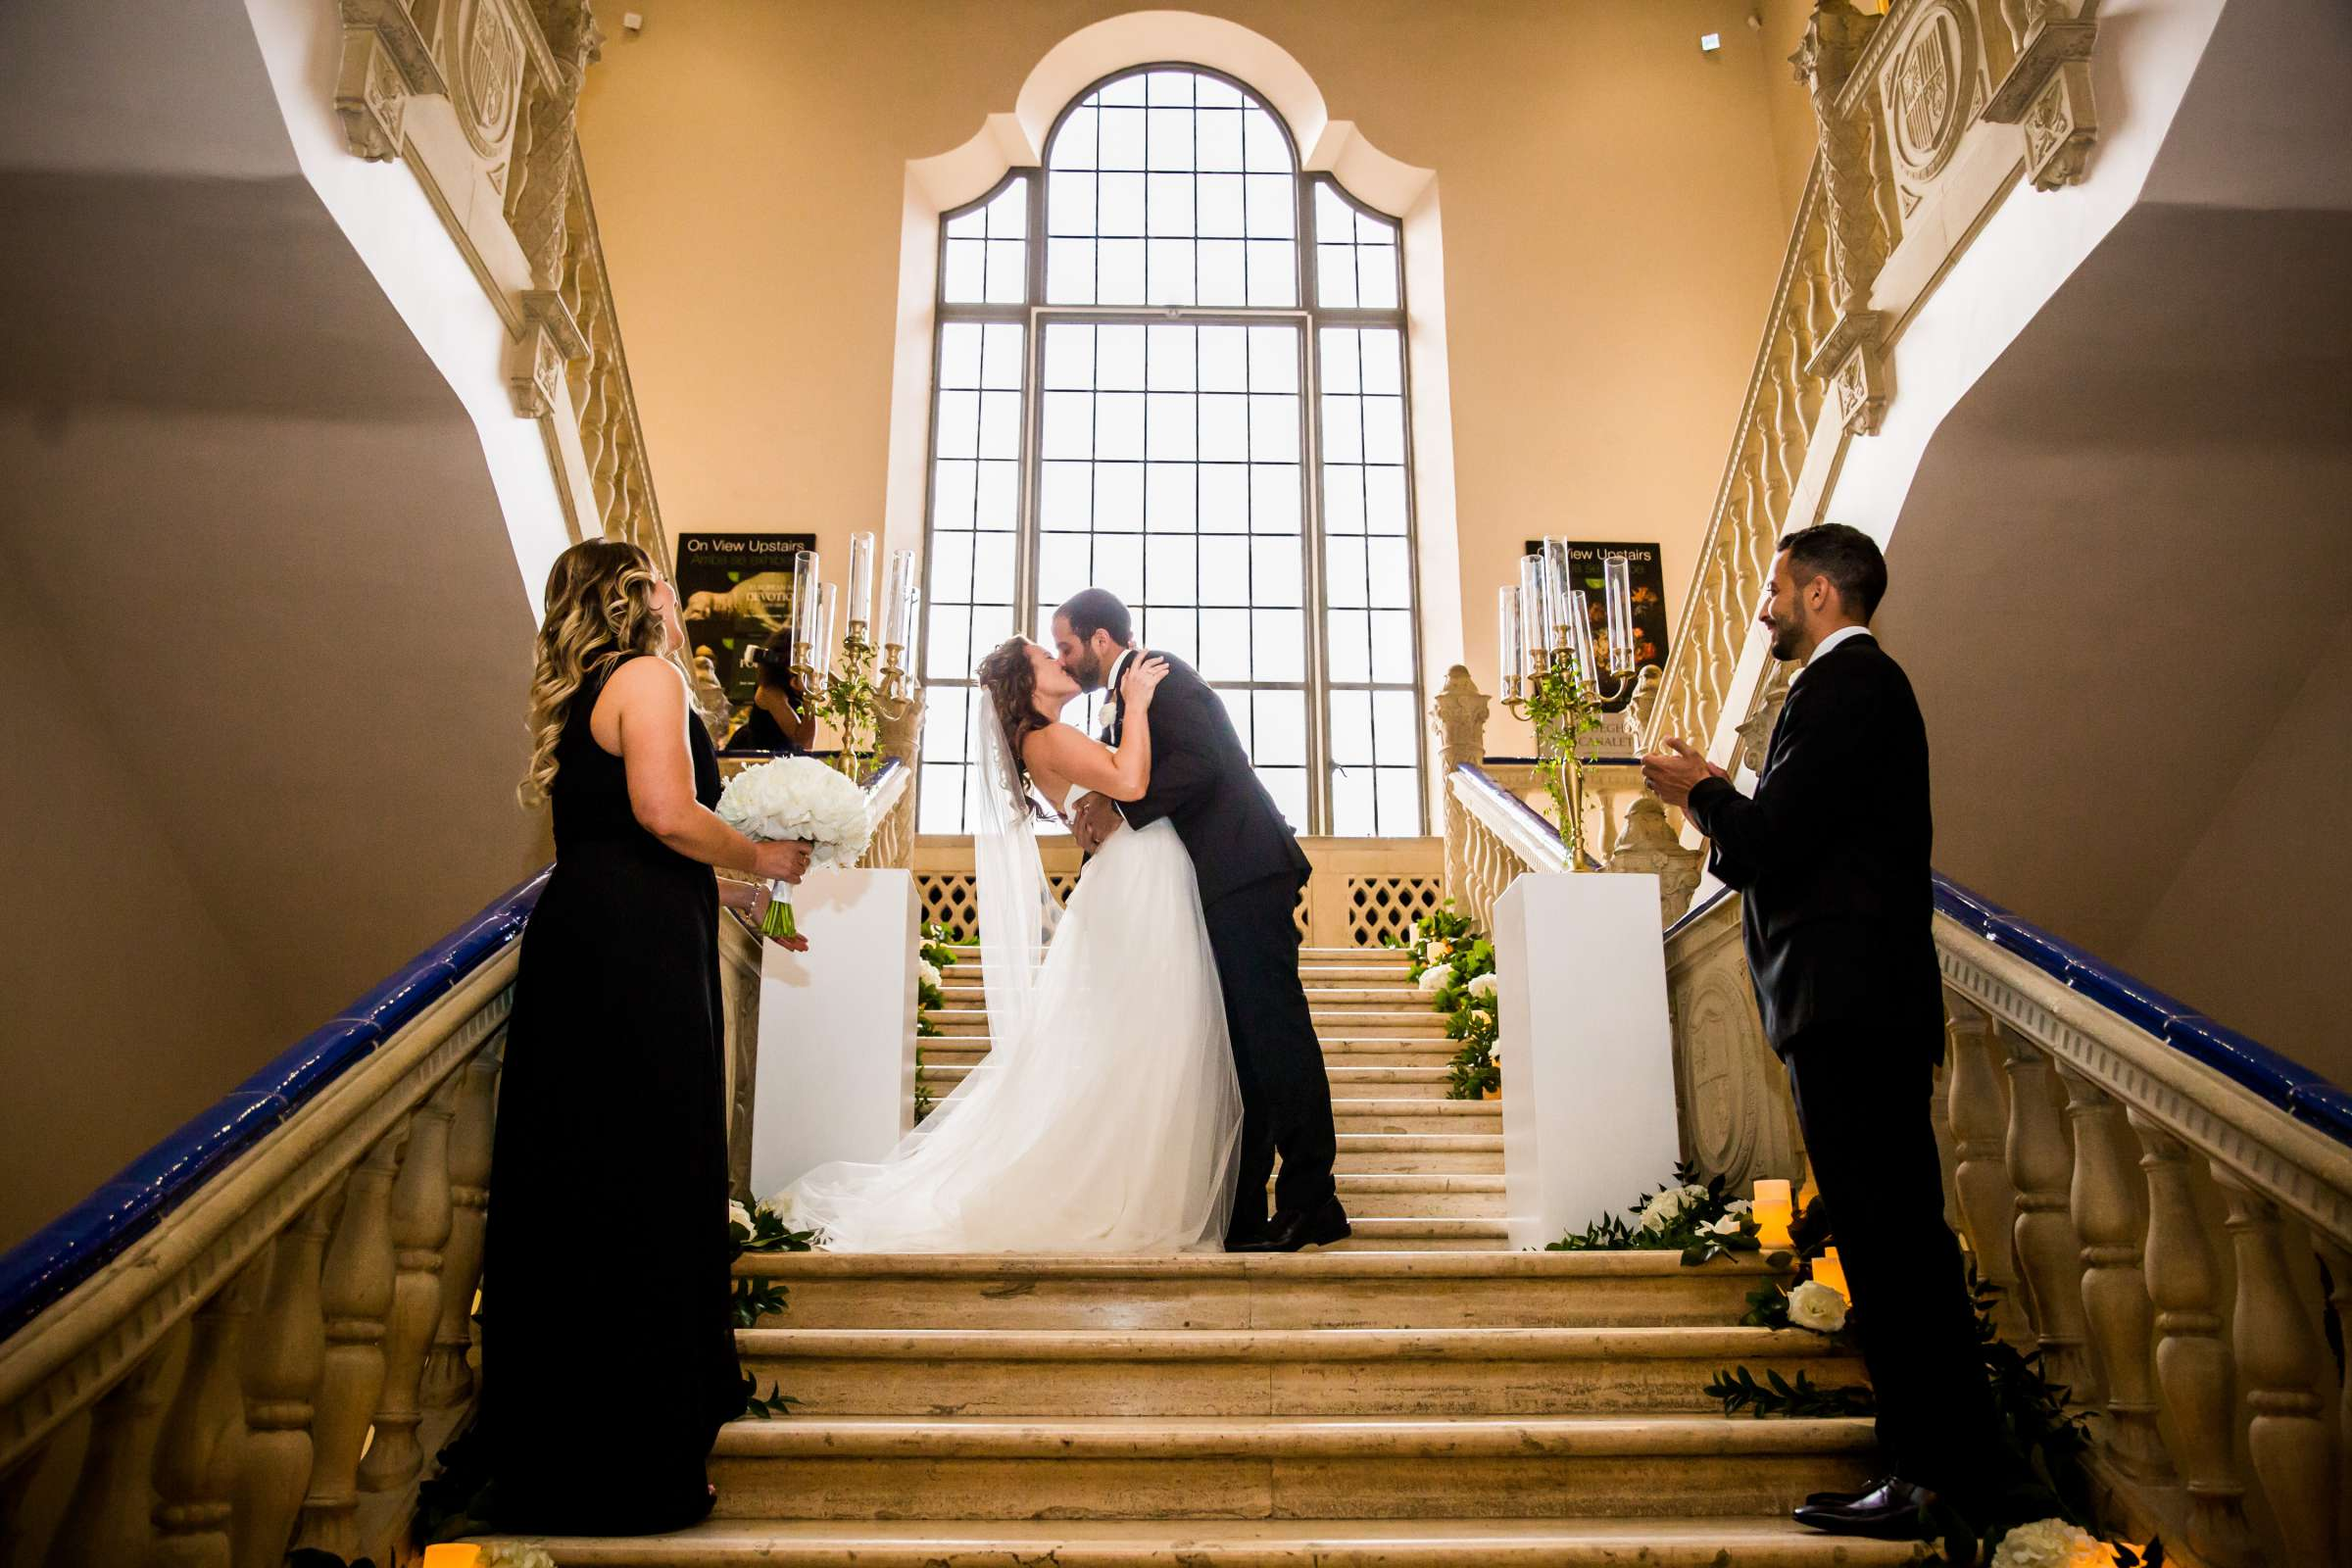 San Diego Museum of Art Wedding coordinated by First Comes Love Weddings & Events, Ruthie and Larry Wedding Photo #236803 by True Photography